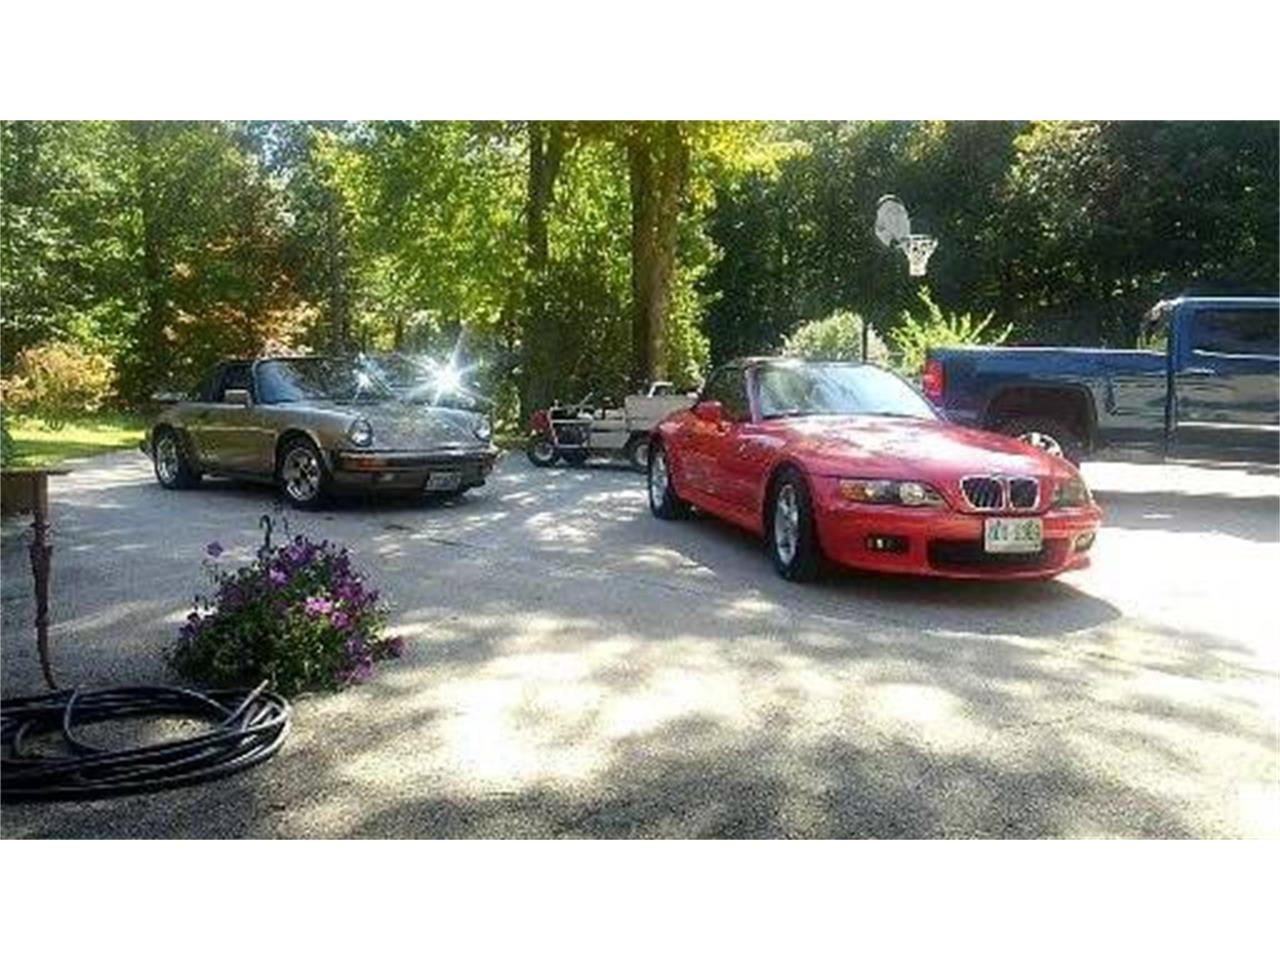 for sale 1999 bmw z3 in west pittston, pennsylvania cars - pittston, pa at geebo